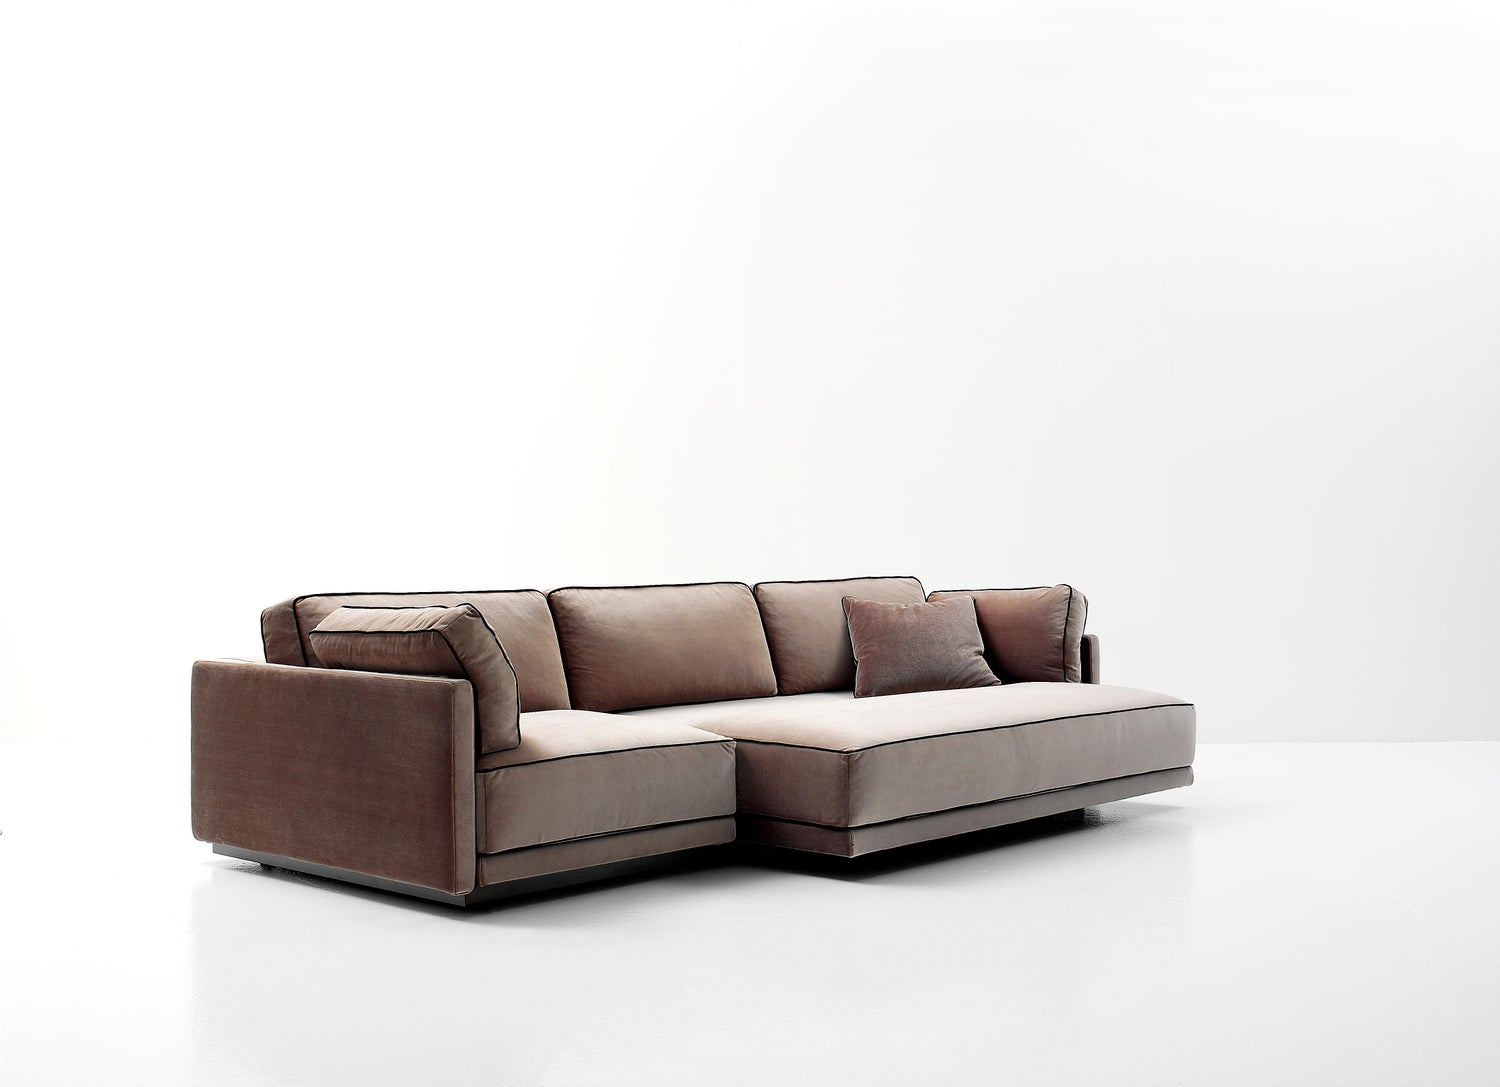 Nube Italia Avenue Sofa In Brown Fabric With Black Trimmings By